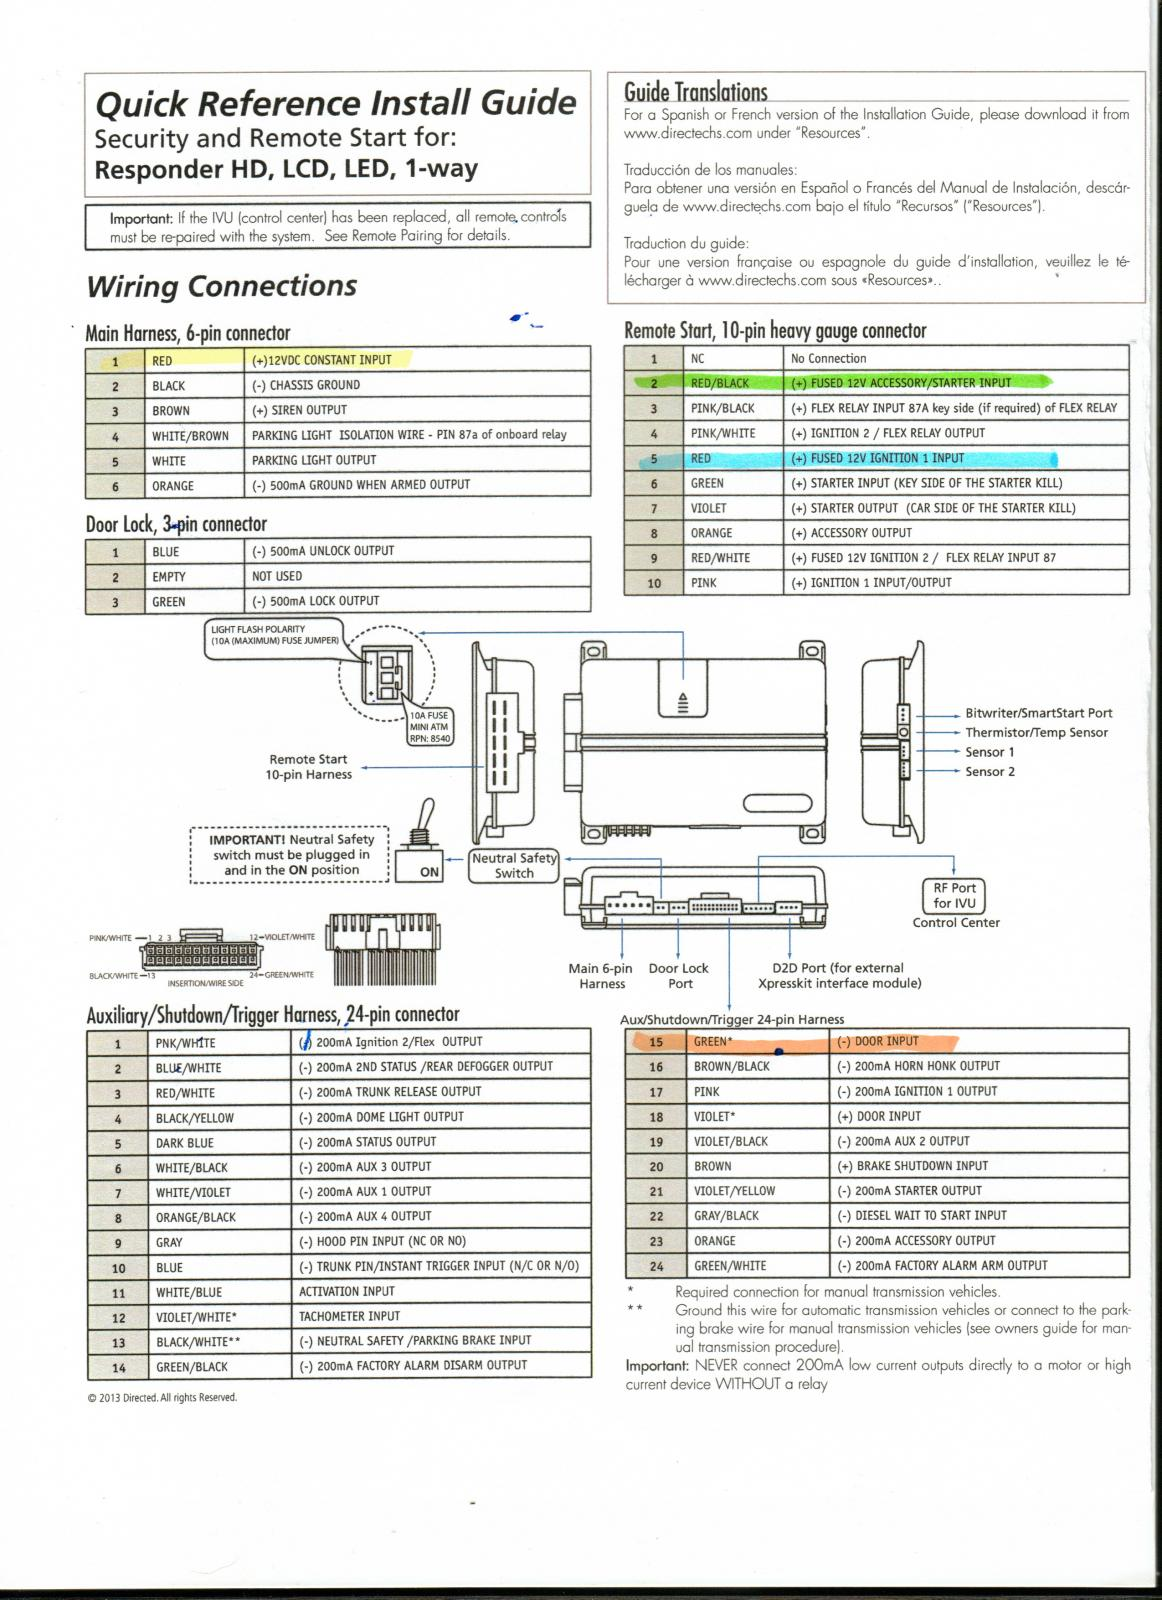 Wiring Diagram For Viper 5701v | Wiring Liry on